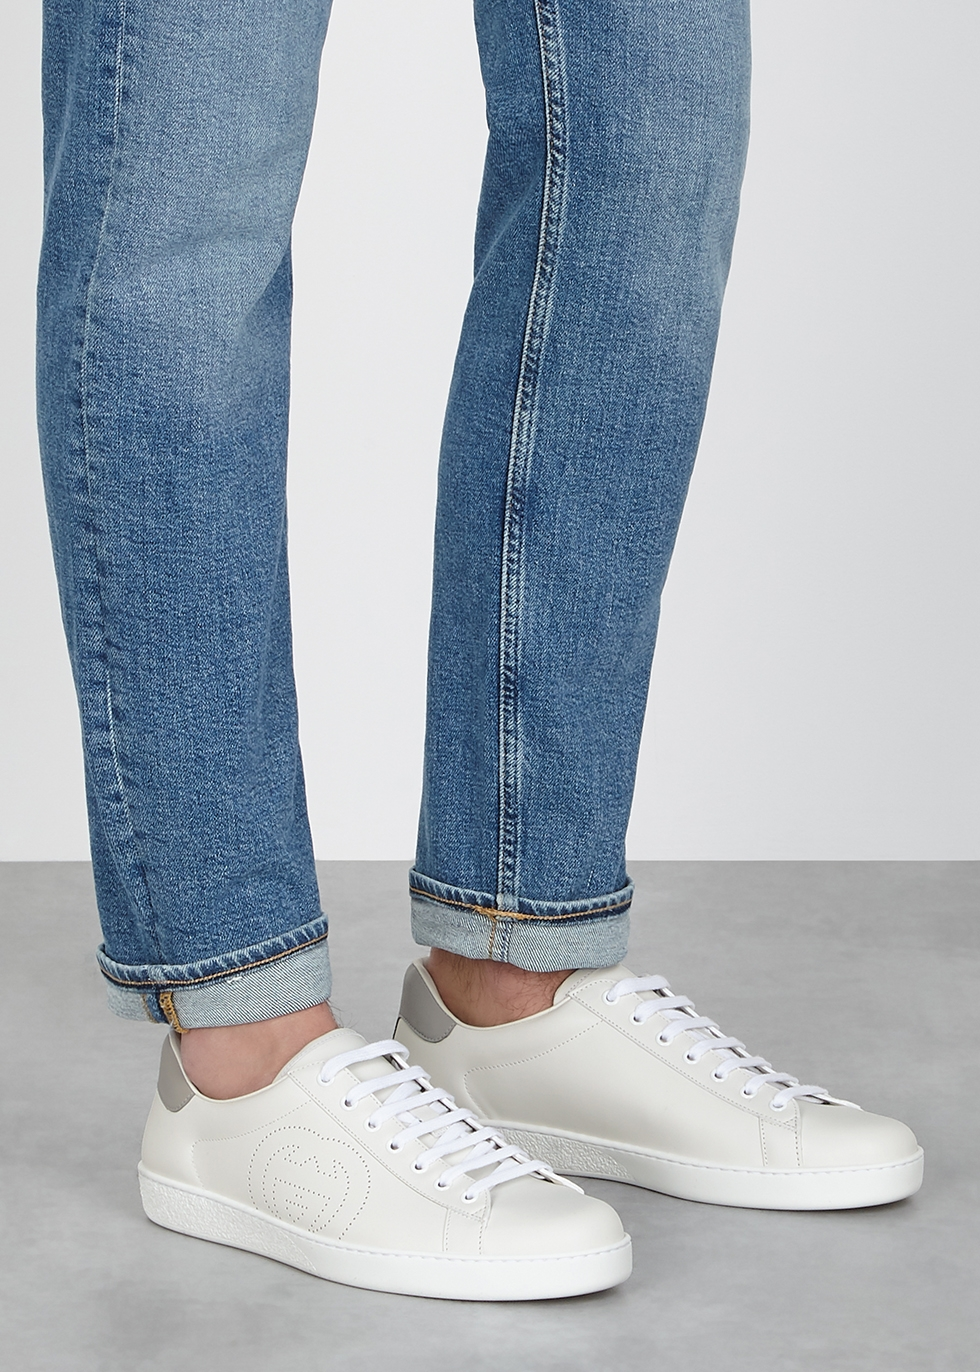 Gucci New Ace white leather sneakers